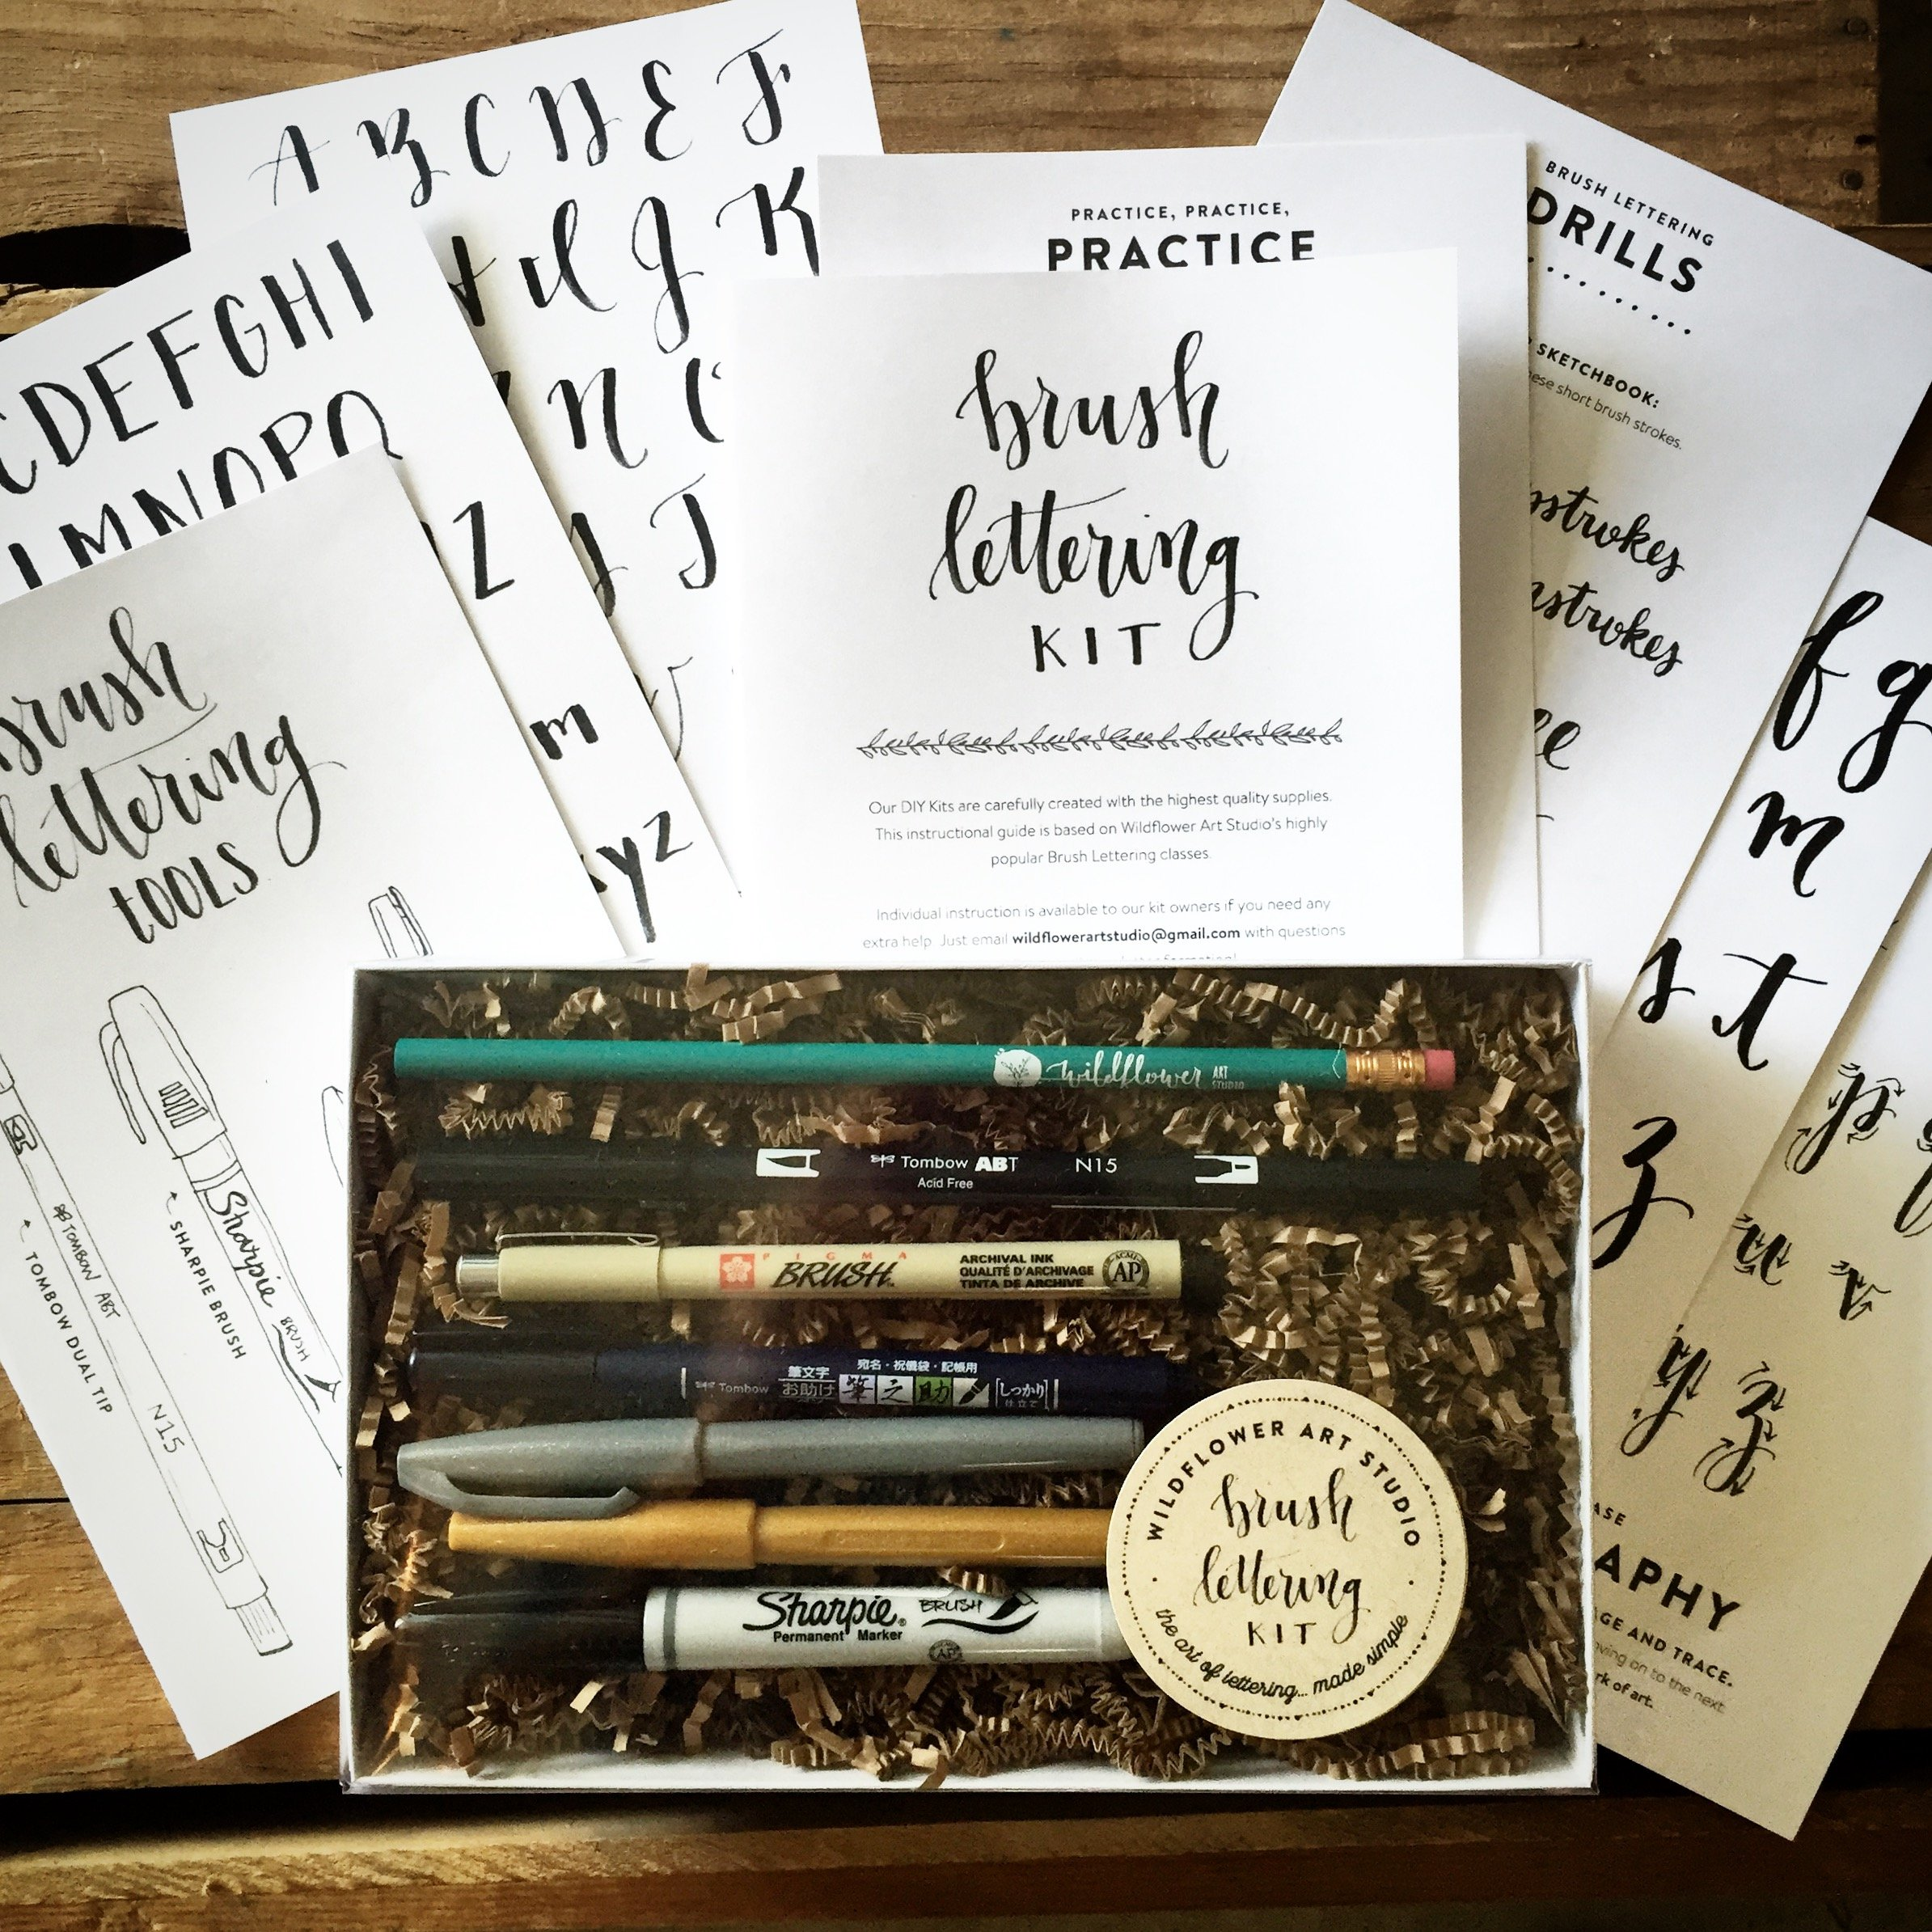 Brush Lettering Kit - DIY Brush Calligraphy Starter Set by Wildflower Art Studio by Wildflower Art Studio